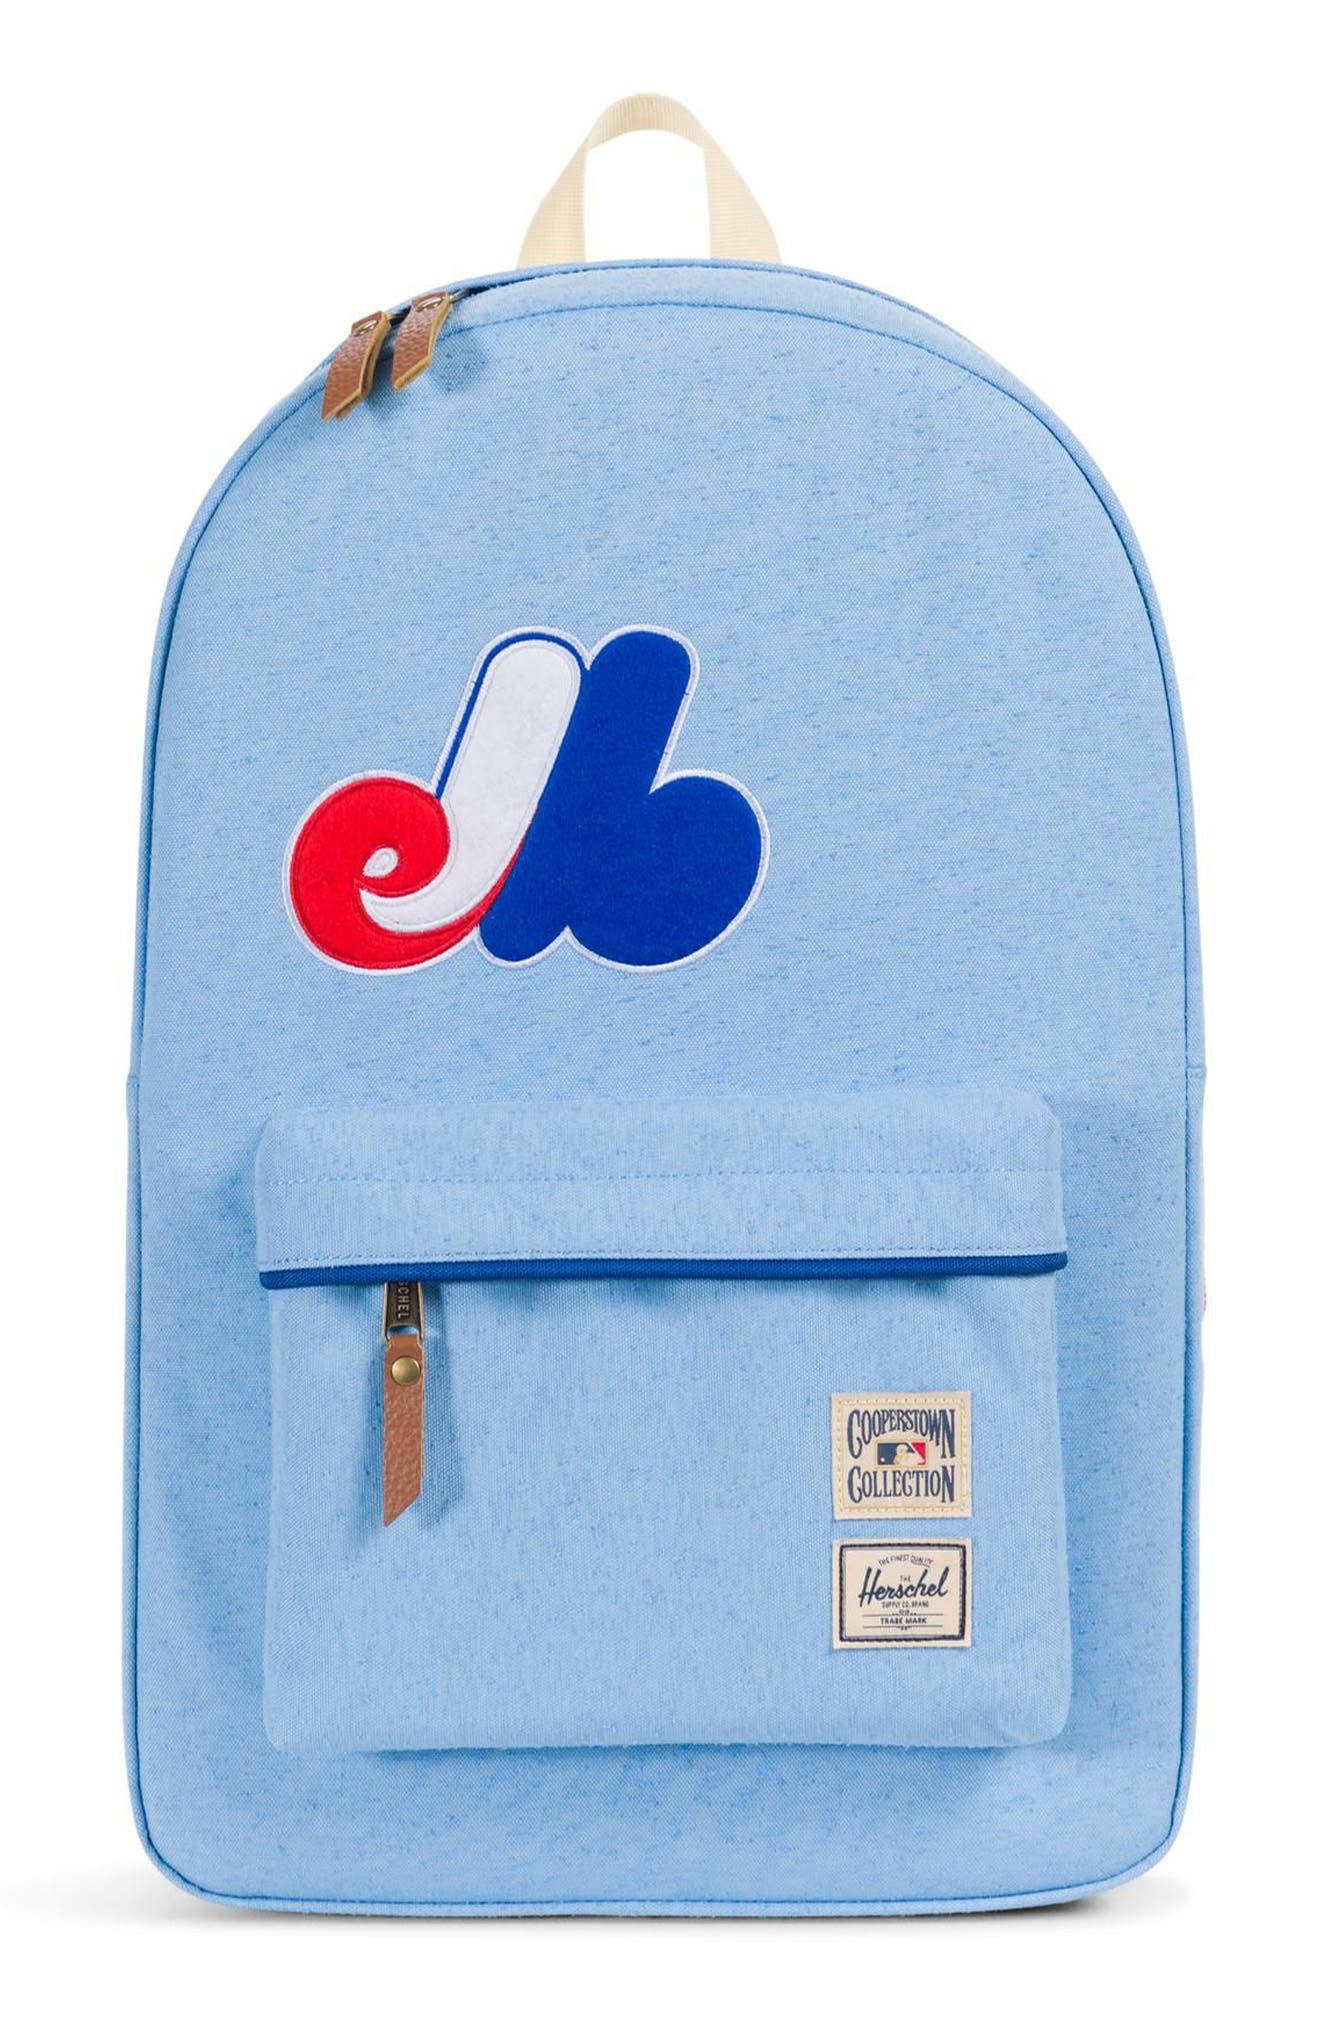 HERITAGE - MLB COOPERSTOWN COLLECTION BACKPACK - BLUE